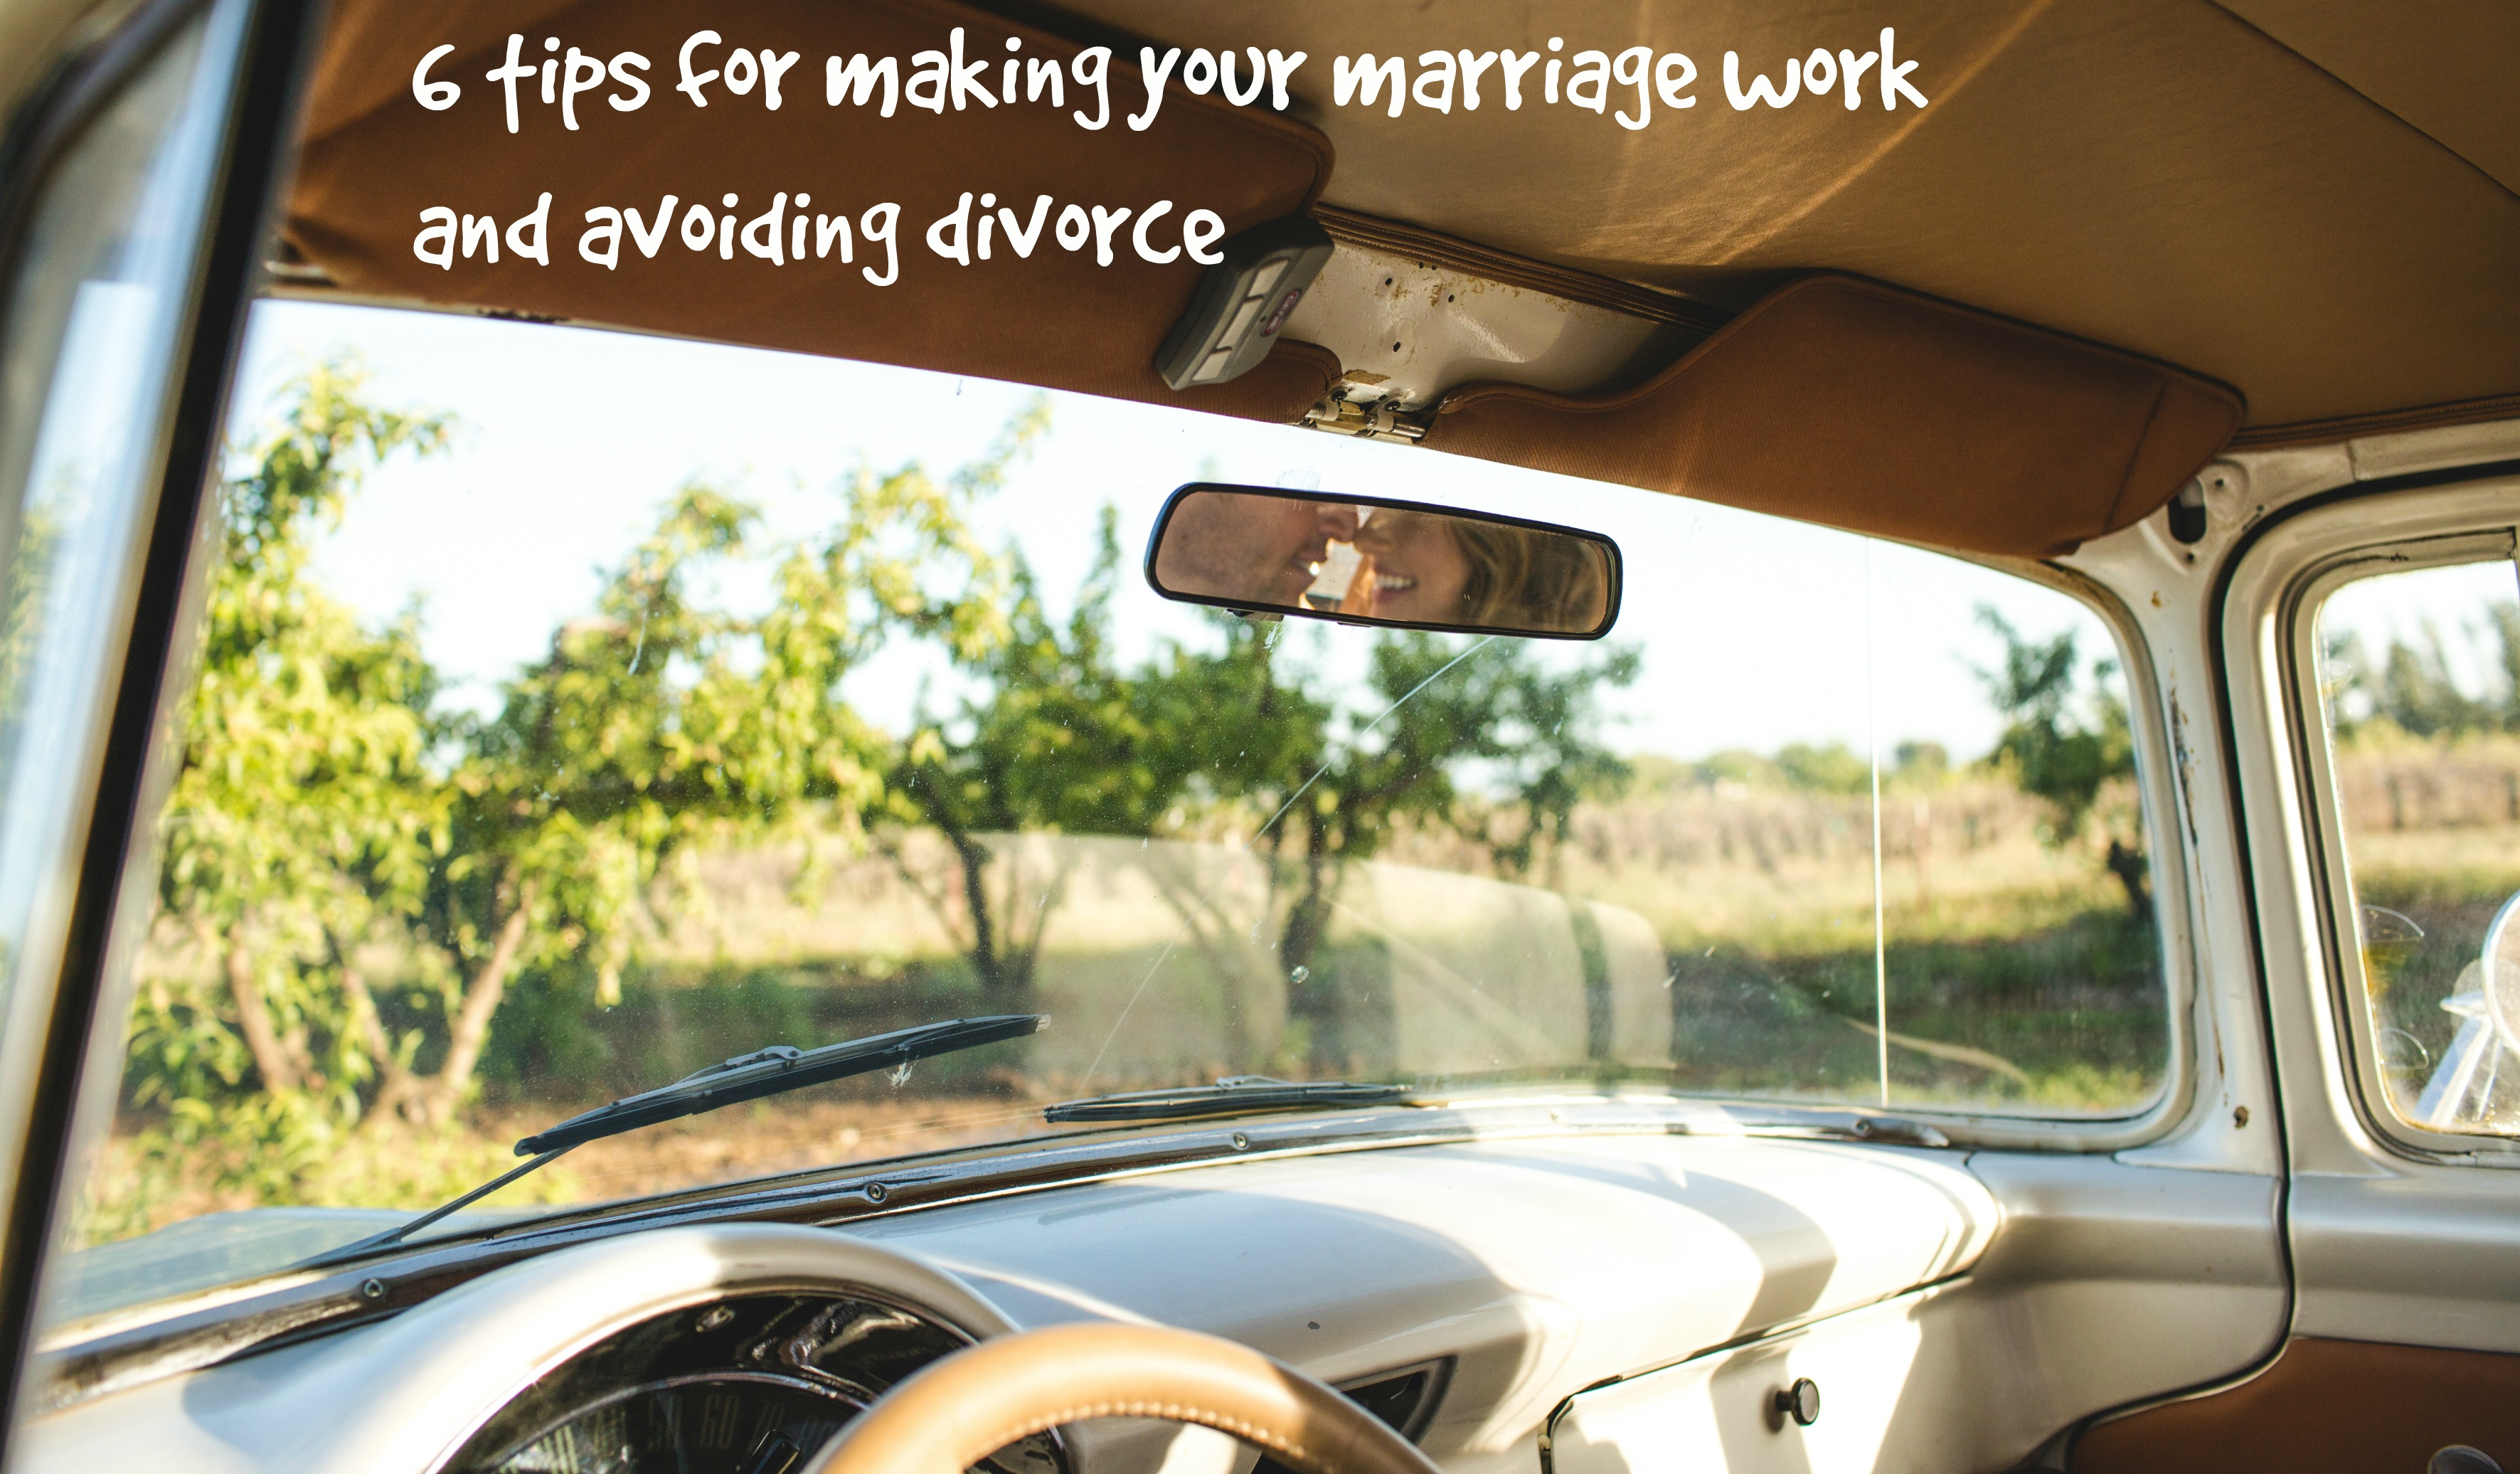 6 tips for making your marriage work and avoiding divorce